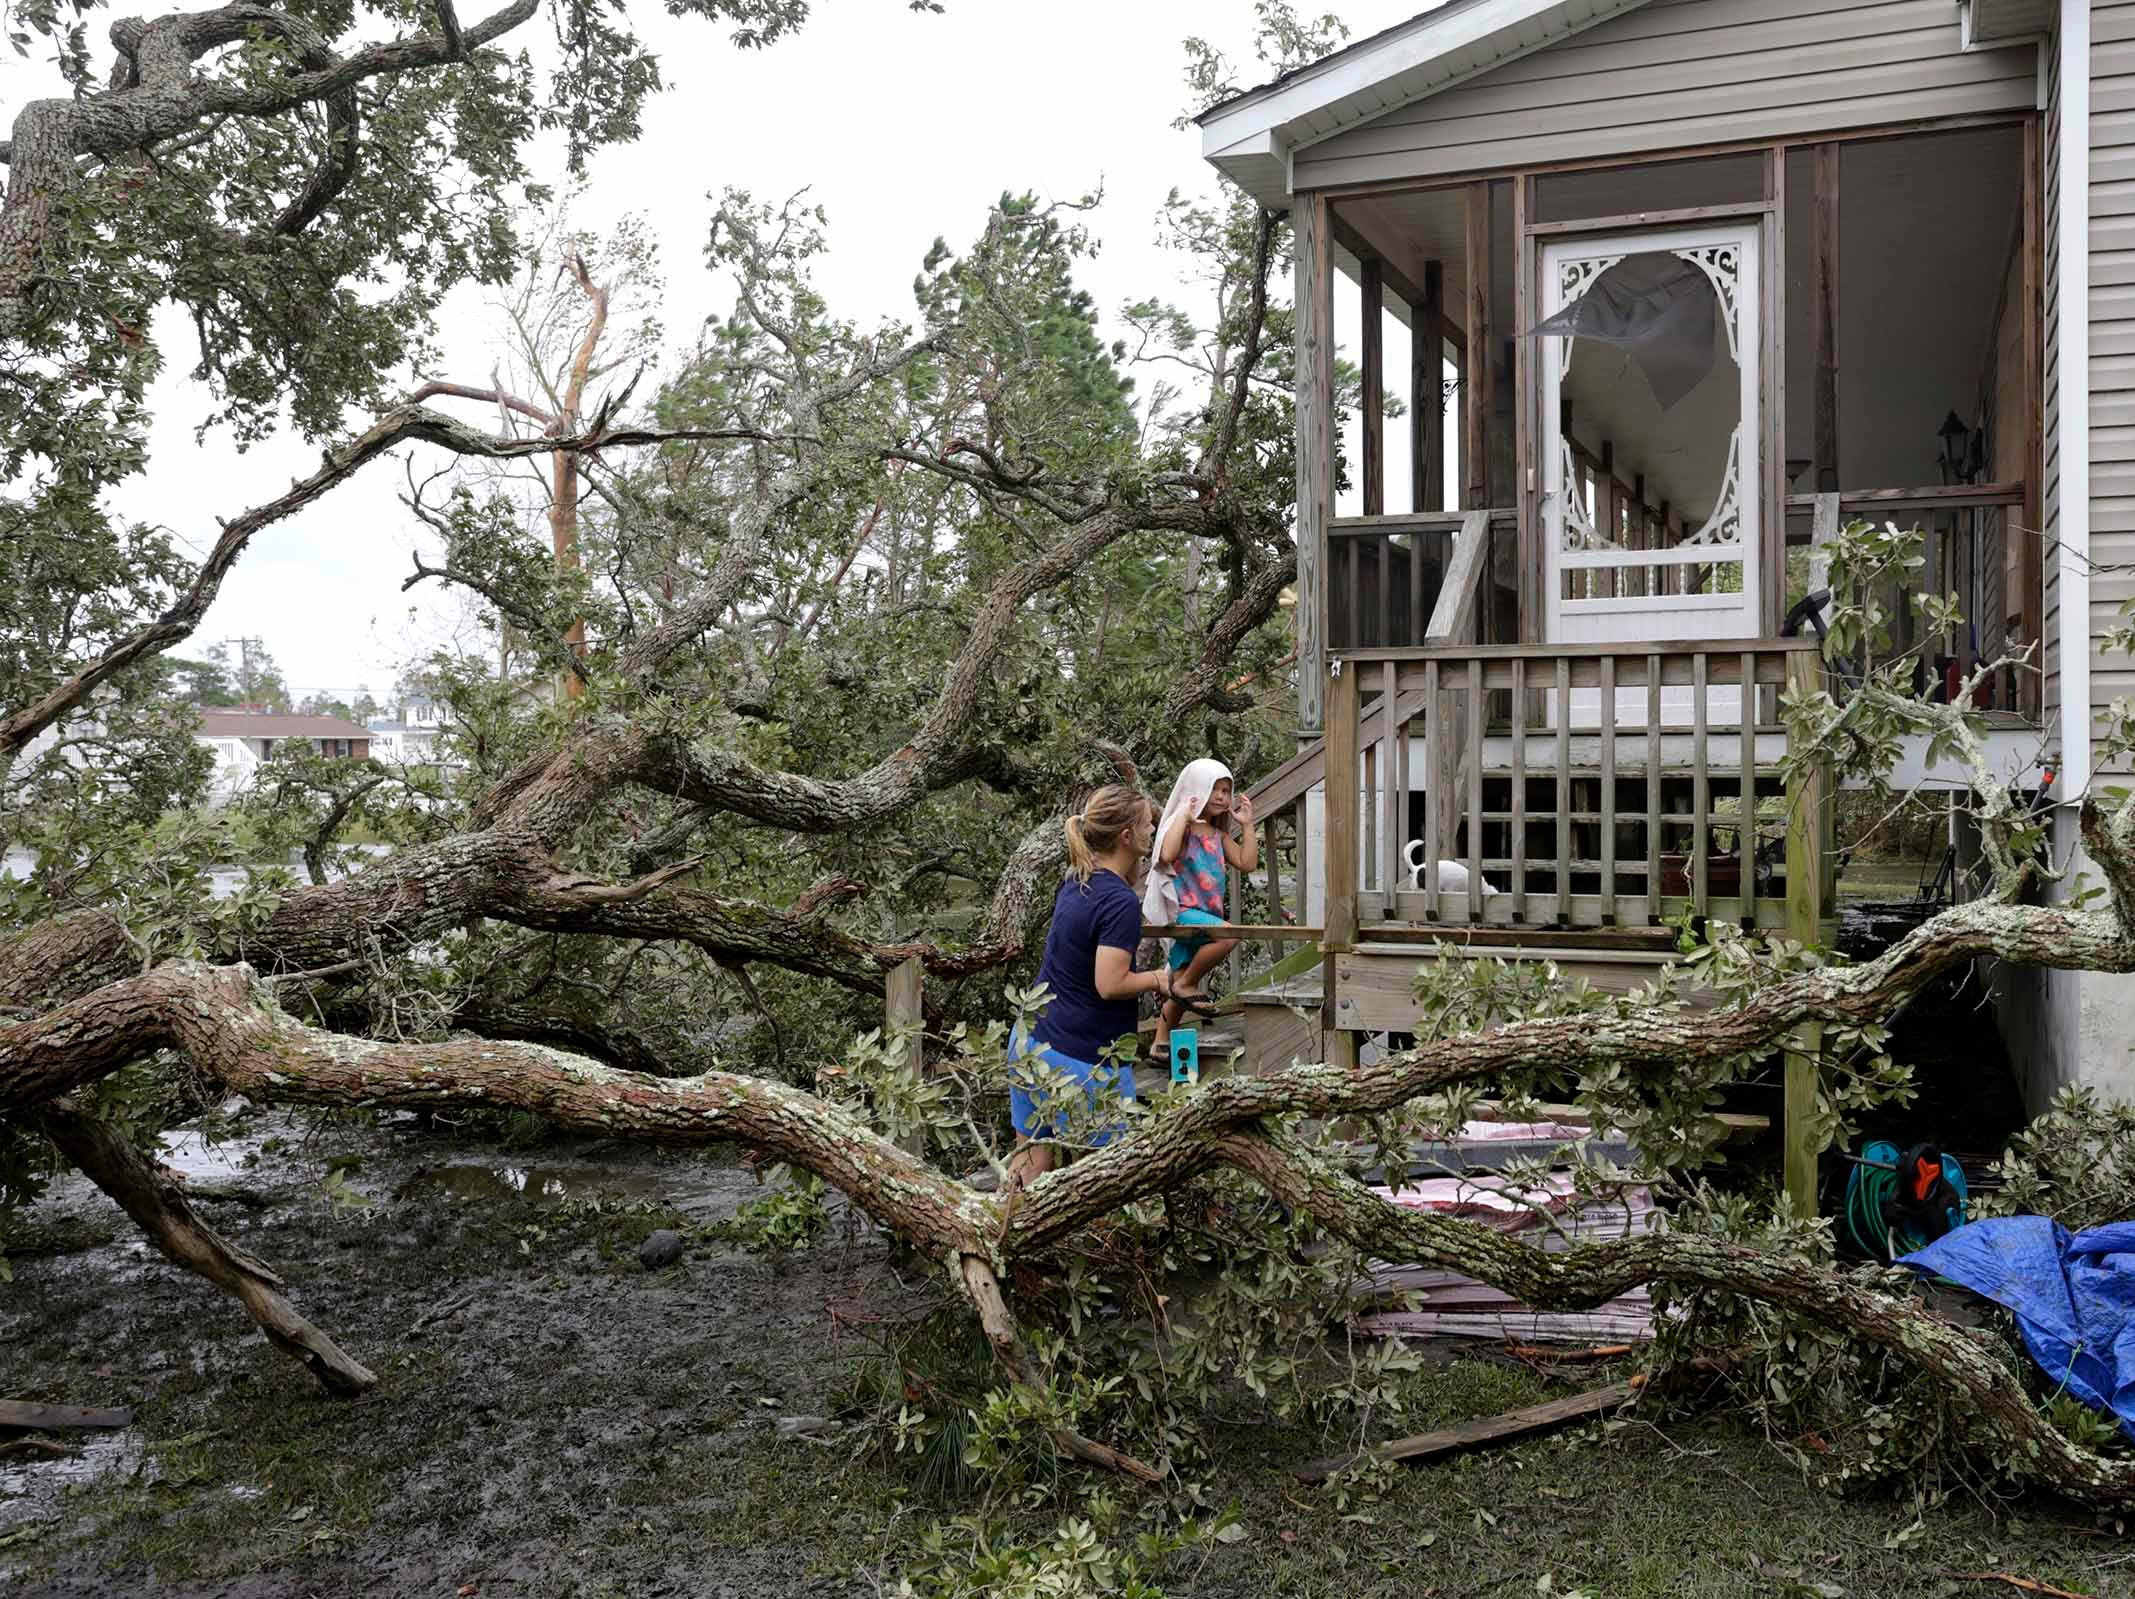 Jessie Lawrence and her daughter Kinsley Spaid make their way home after Hurricane Florence hit Davis N.C.,Saturday, Sept. 15, 2018. Davis was said to have 4 1/2 feet of storm surge.